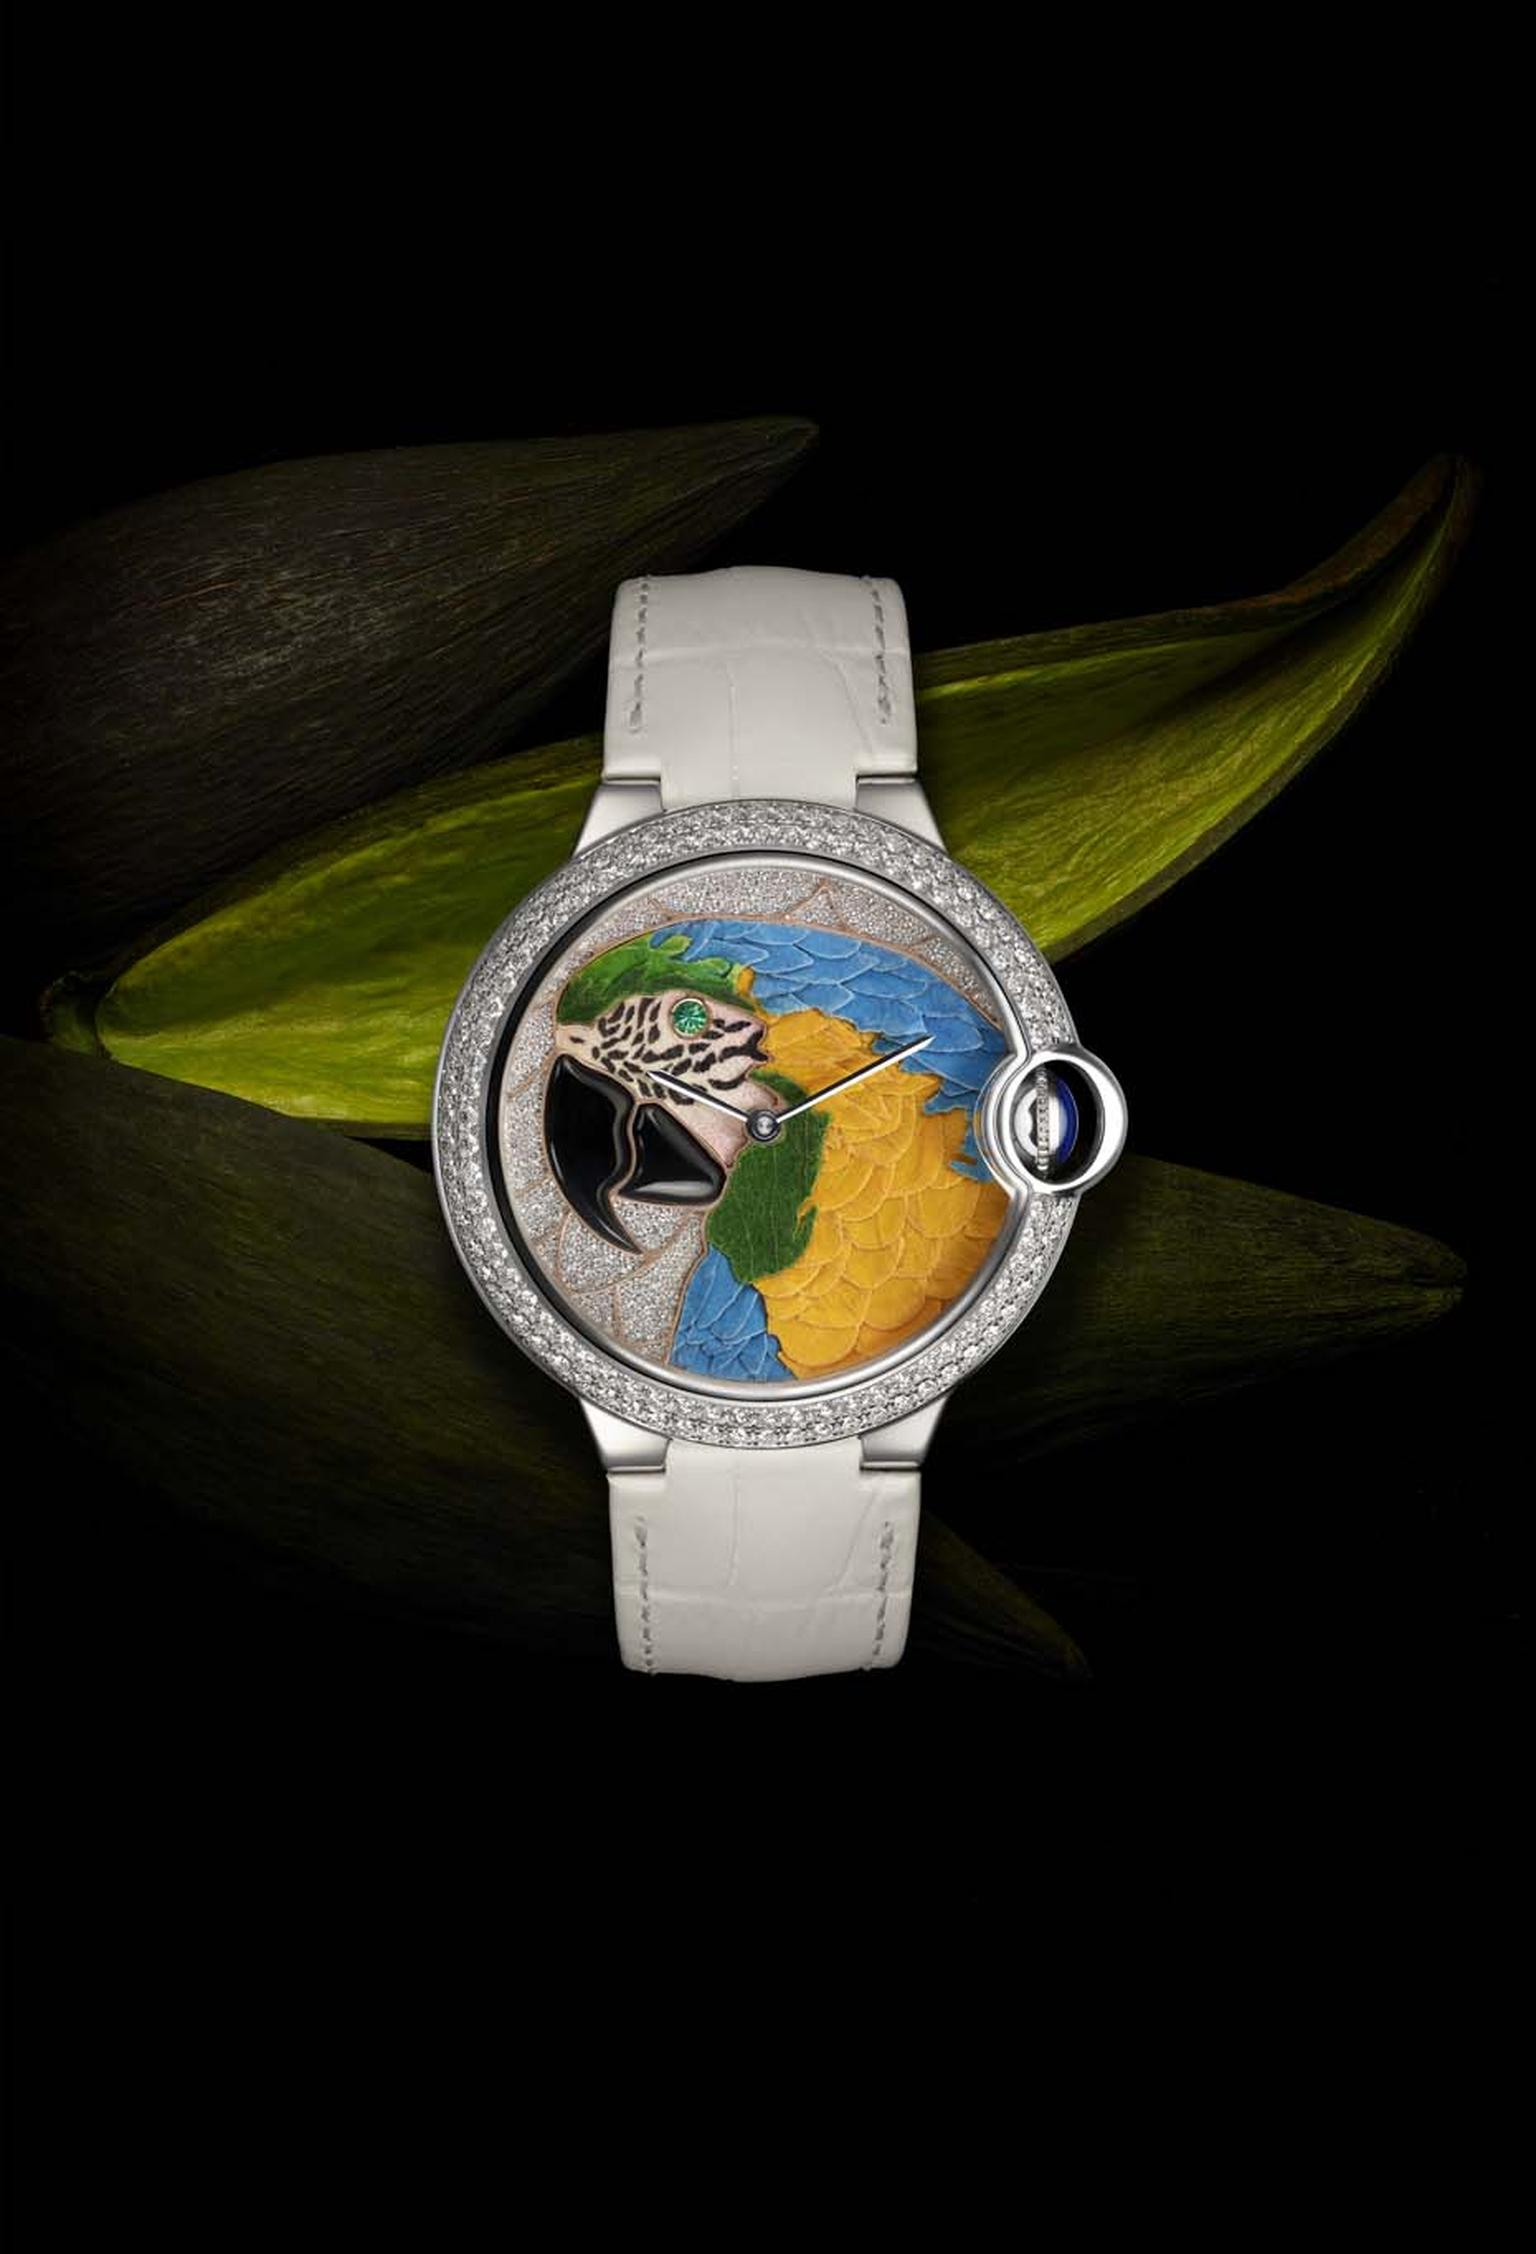 Cartier's Ballon Bleu de Cartier Floral-Marquetry Parrot with diamonds